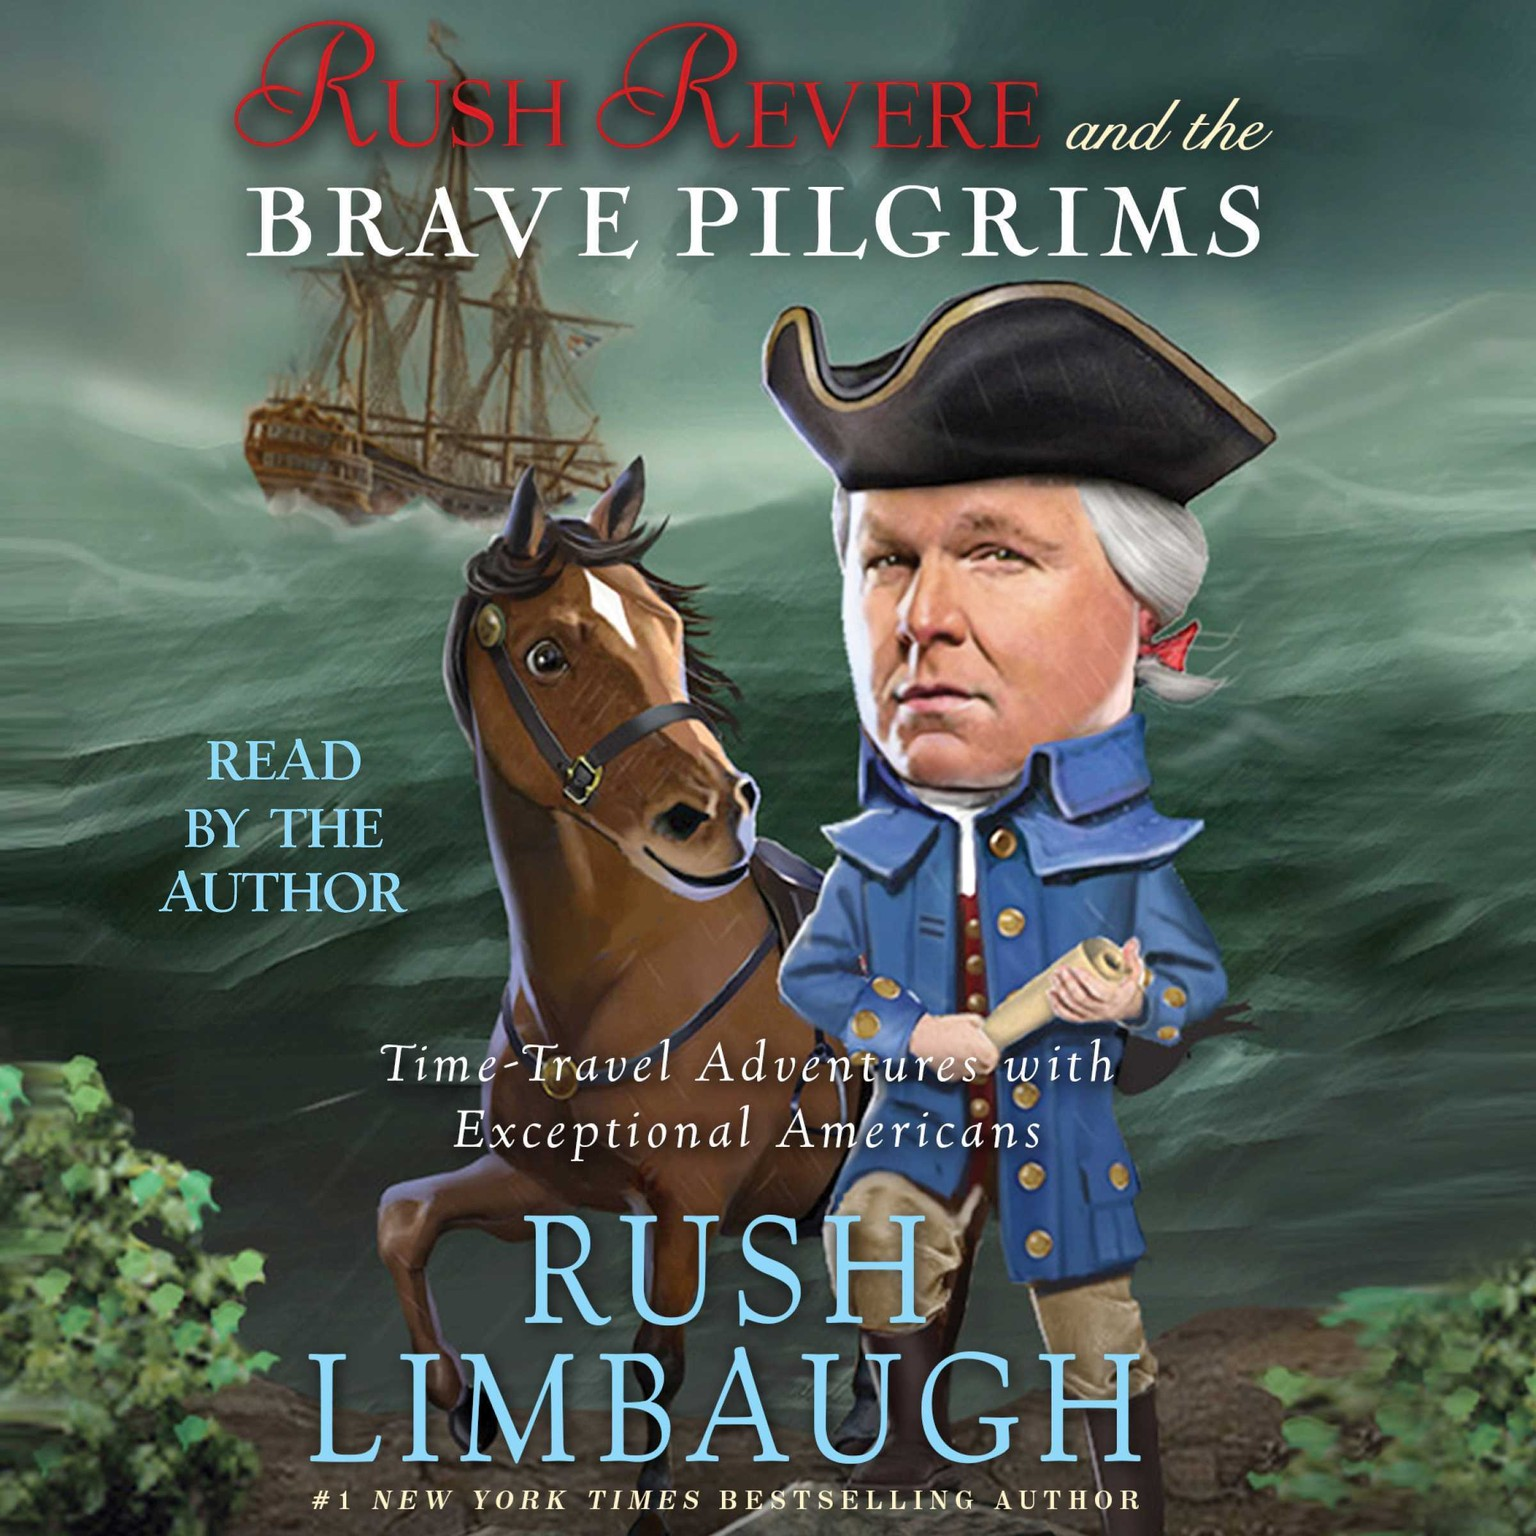 Printable Rush Revere and the Brave Pilgrims: Time-Travel Adventures with Exceptional Americans Audiobook Cover Art